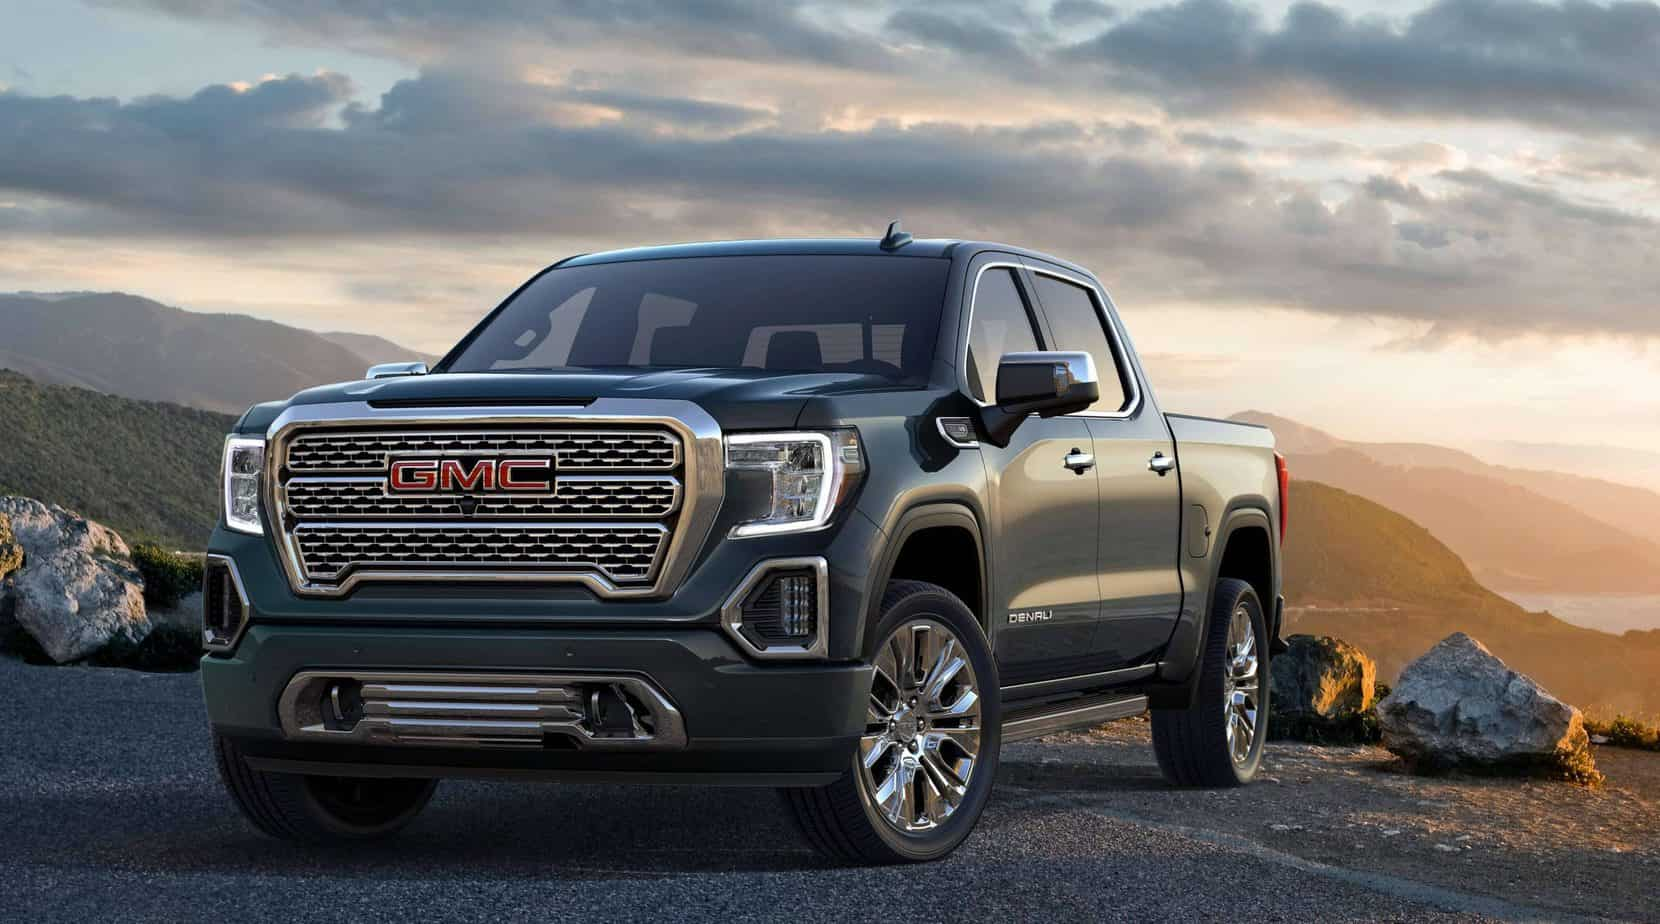 GM details 12 upcoming electric vehicles from Cadillac, GMC, Chevrolet, and Buick